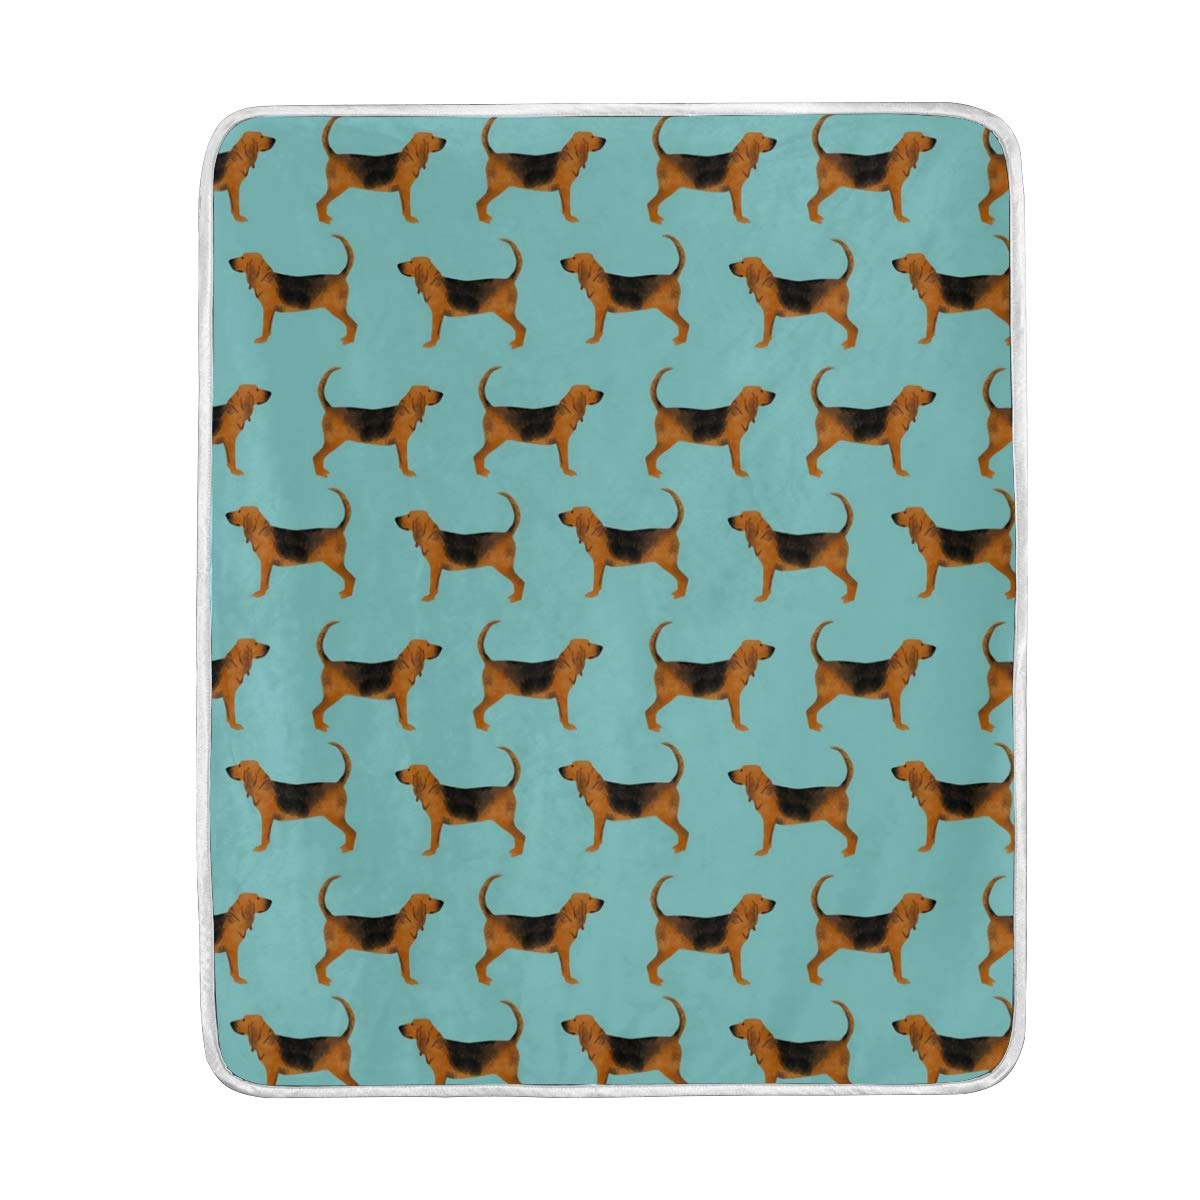 FannyMT Bloodhound Dog Mint Blanket Throw Lightweight Cozy Plush Microfiber Solid Blankets for Kids Adults, 60 x 50 Inch